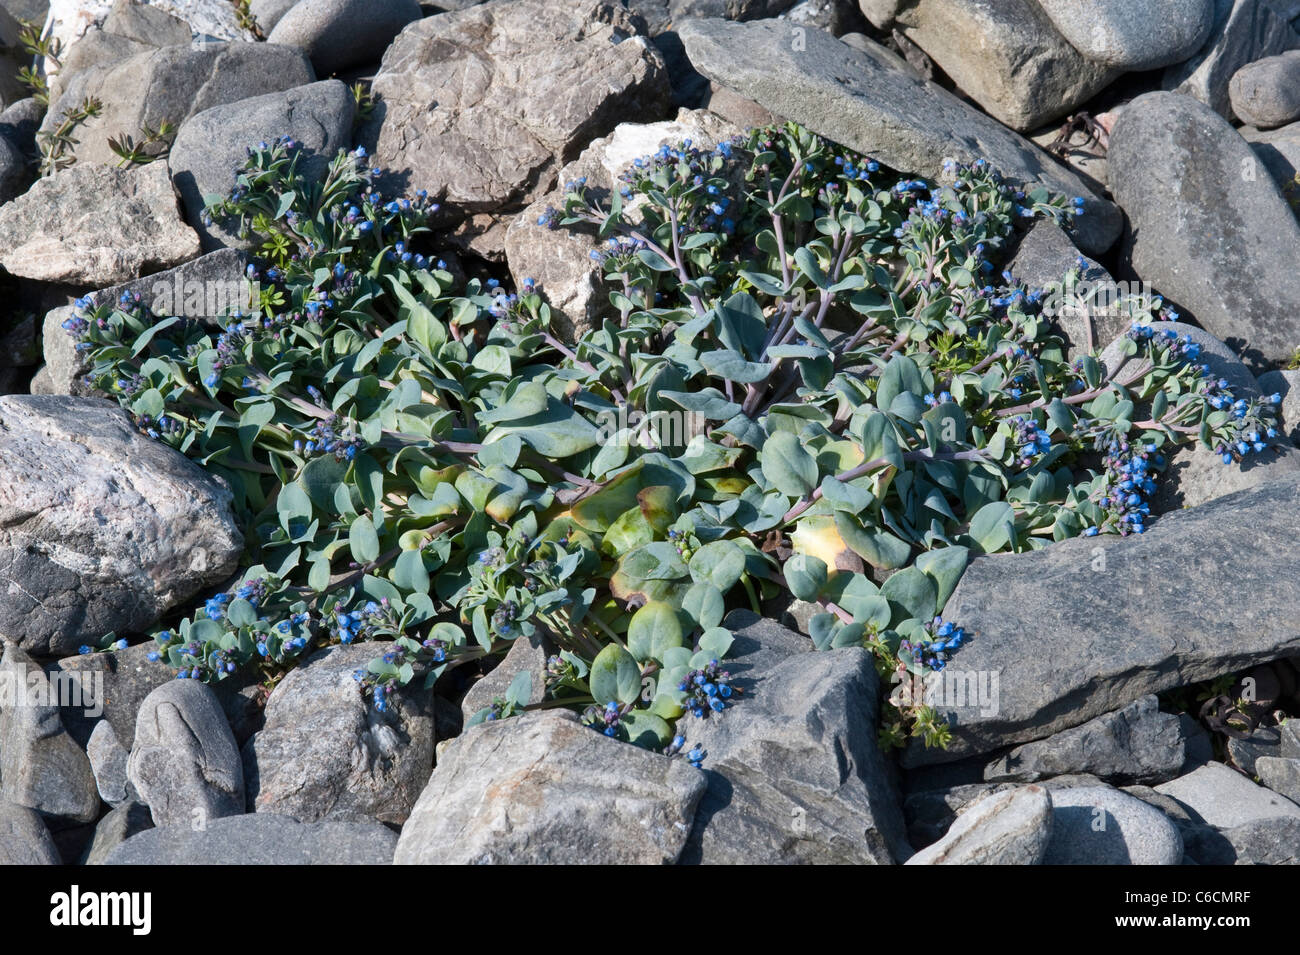 Oyster Plant Mertensia maritima flowering growing on shingle